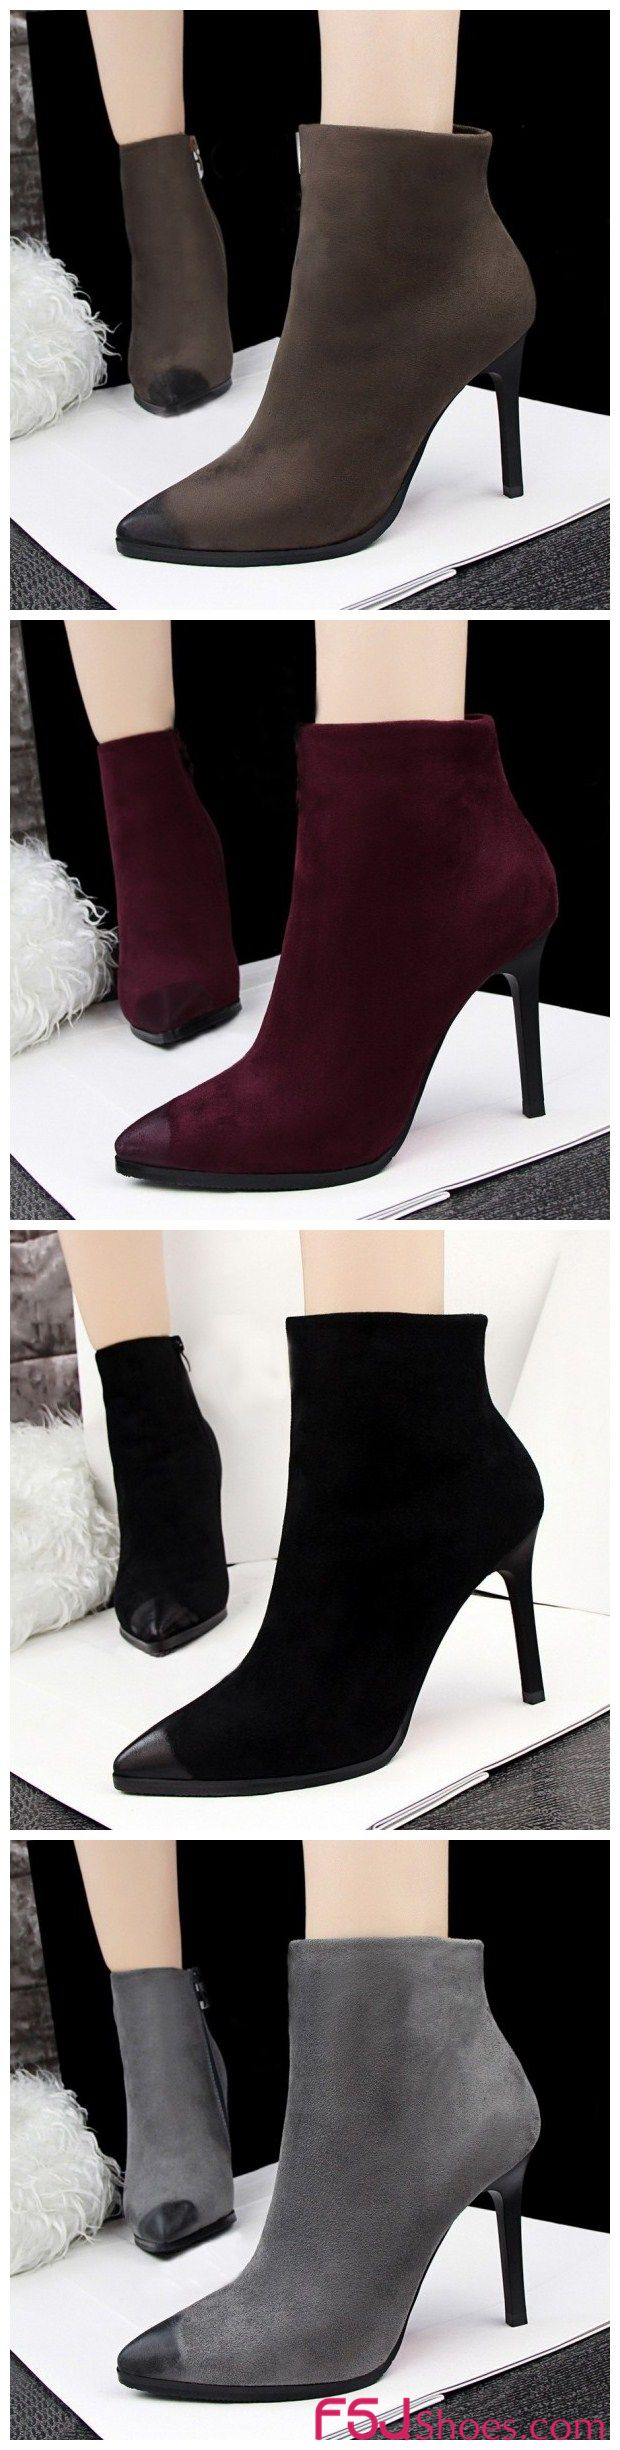 Womne's Fall and Winter Fashion Ankle Booties Fall Outfits Women Fall Fashion Trends 2017 Korea Street Style Fashion Week Winter Outfits 2017 Women's Grey, Burgundy, Black, Grey Suede Stiletto Heels Ankle Boots Christmas Outfit 2017   FSJ